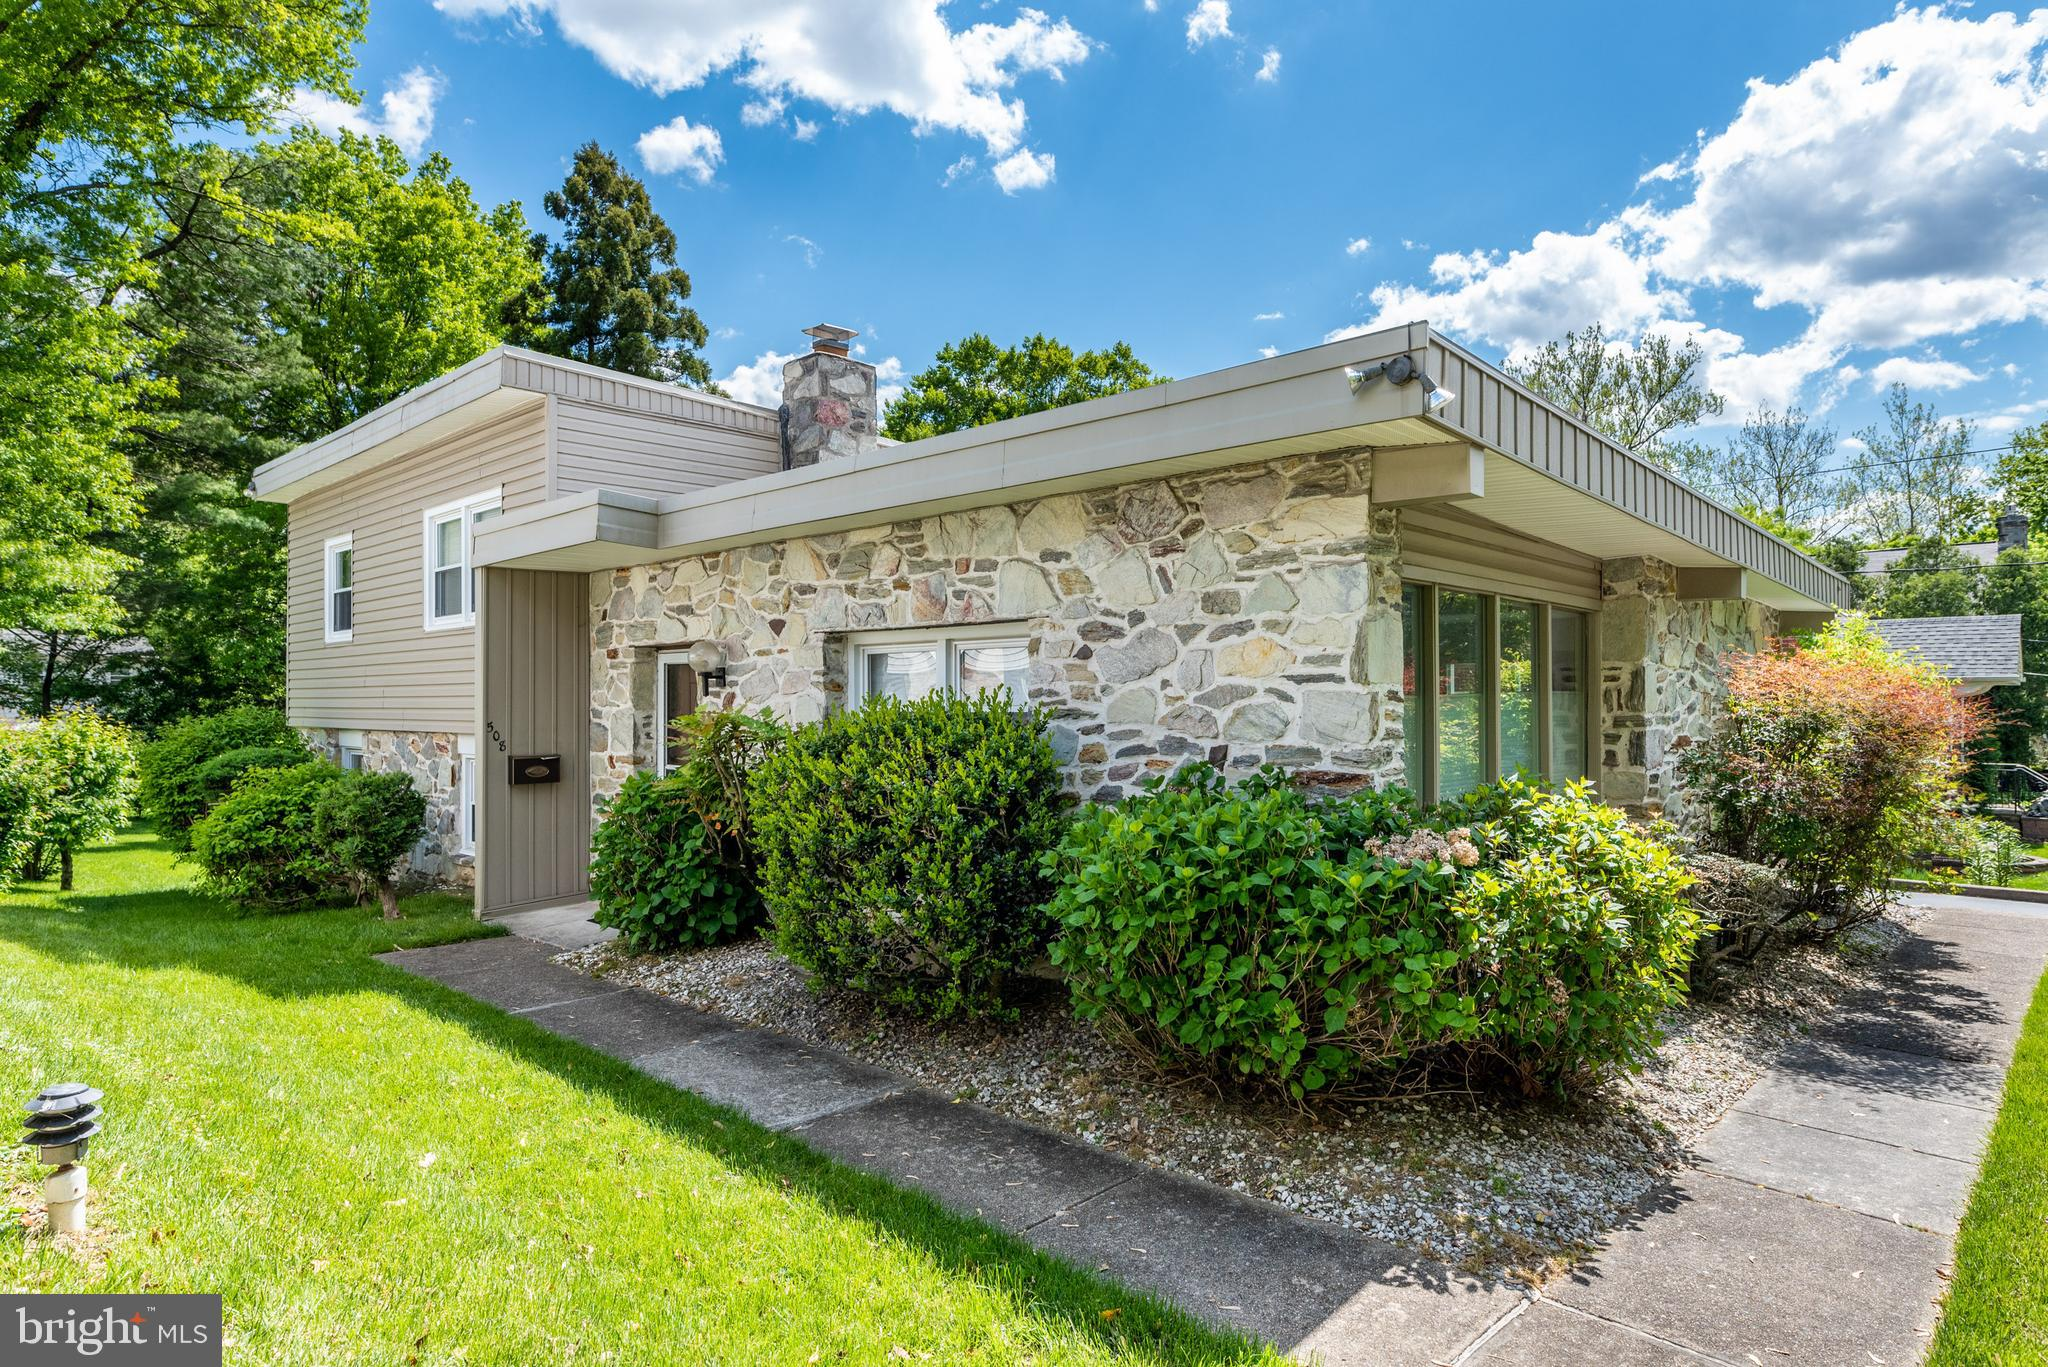 This modern and stylish split-level home in Narberth is just minutes from Montgomery Avenue and all that it offers, and a short stroll to the boroughs unique charms, including its playground and library, as well as unique boutiques along Haverford Avenue. An arresting circular driveway with plentiful parking and pretty front lawn lead to this home, which is set back from the street. Once inside, the open living room and dining room, showcased with walls of windows, beckon. Glowing hardwood floors and recessed lighting make both of these rooms so attractive and inviting, with plenty of natural light streaming in. In the kitchen, which flows well from the dining room, the warm, welcoming vibe continues. Creamy cabinets with pretty hardware, along with a unique backsplash, complement the stainless steel appliances and tiled floor. Step down to a comfortable, carpeted family room, with recessed lighting and a ceiling fan. Sliders lead outside to the pretty patio overlooking the lovely backyard and storage shed. Steps lead to the second level, with its main suite, two additional bedrooms, and hall bath. The main bedroom, with hardwood floors and ceiling fan, is spacious and comfortable, while the en-suite bath is sumptuous. Remarkable tiles flank the glass-doored, step-in shower, and the vanity has a pretty granite countertop. The two additional bedrooms are comfortable, each with windows and closets. The hall bathroom has a tub/shower combination, as well as a vanity sink with attractive countertop and plenty of cabinets. The large, finished level steps below the family room is a fun recreation space, with a built-in toy chest. It also houses mechanicals, as well as the laundry area. There is a pretty powder room on this level, with a deep vanity sink. Outside, the nice patio overlooks the expansive, green and level yard and handy storage shed, and the driveway and one-car attached garage provide plenty of parking opportunities.   The borough of Narberth has numerous at